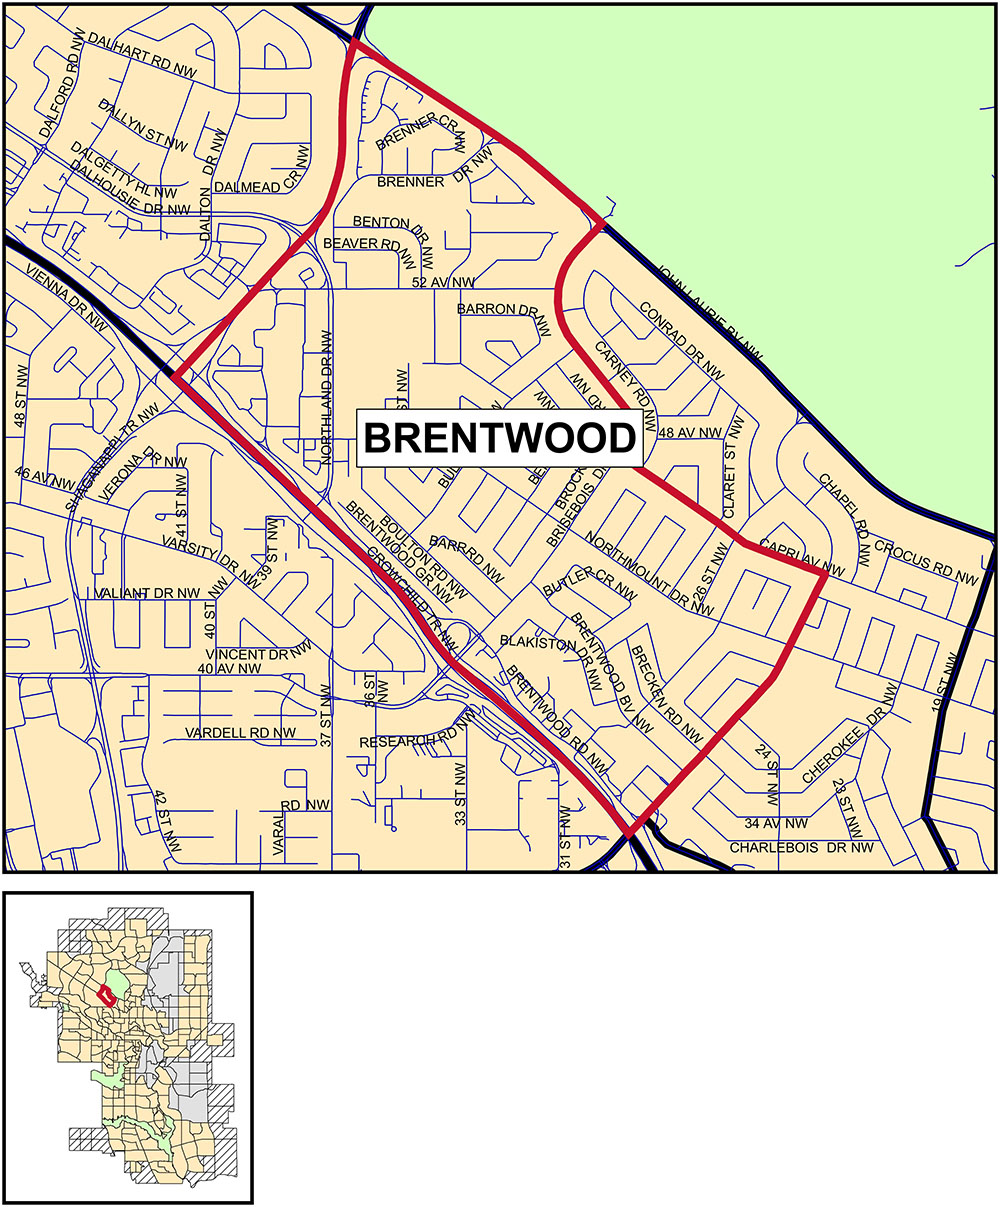 Brentwood community profile